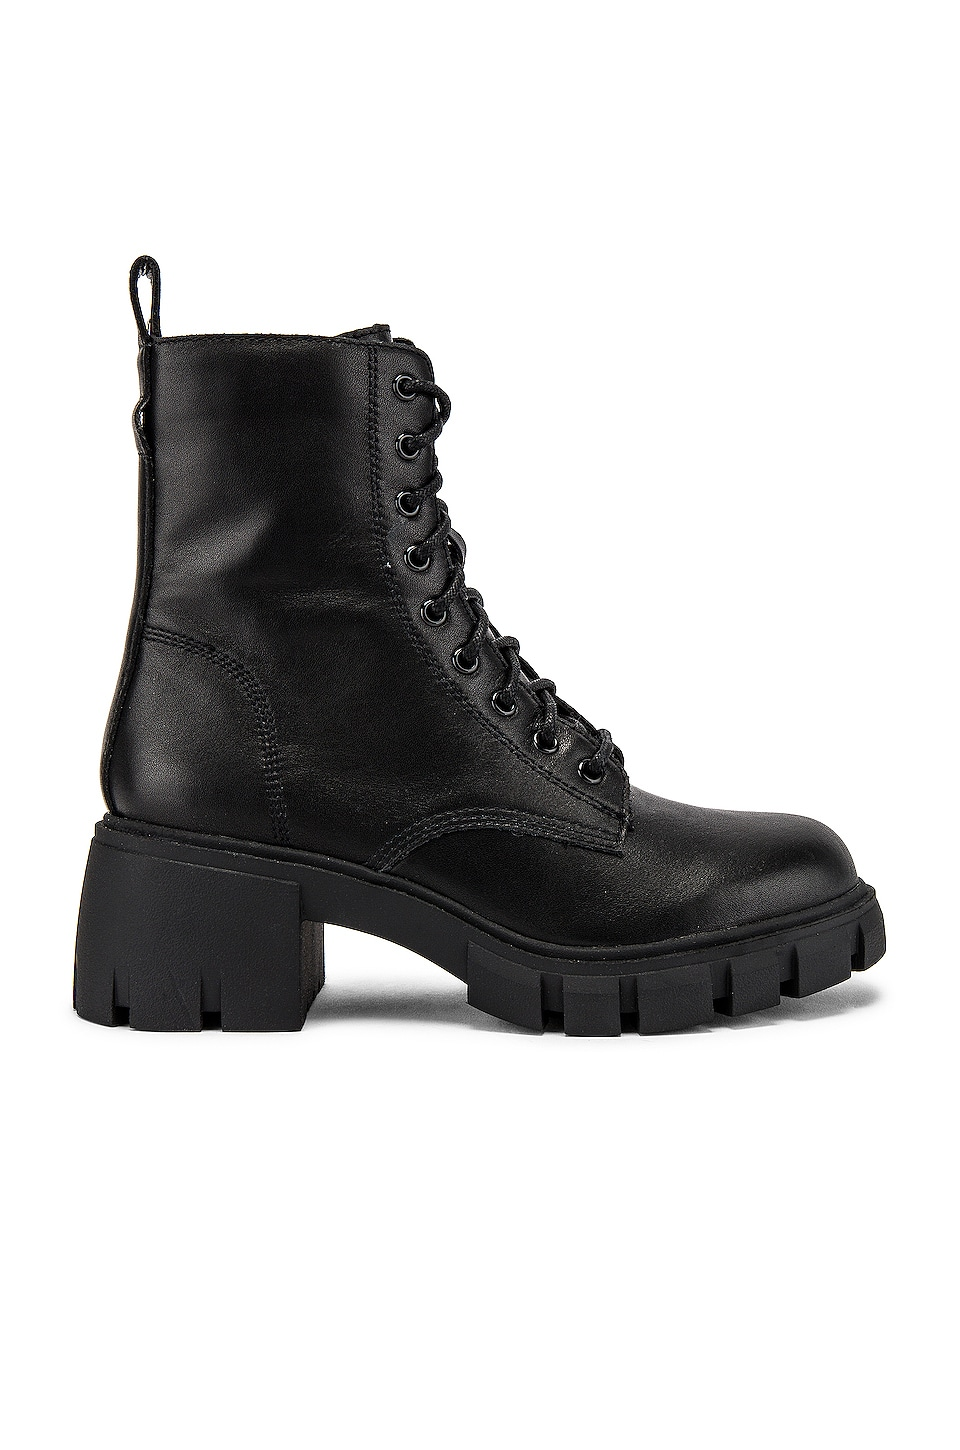 Steve Madden Hybrid Combat Boot in Black